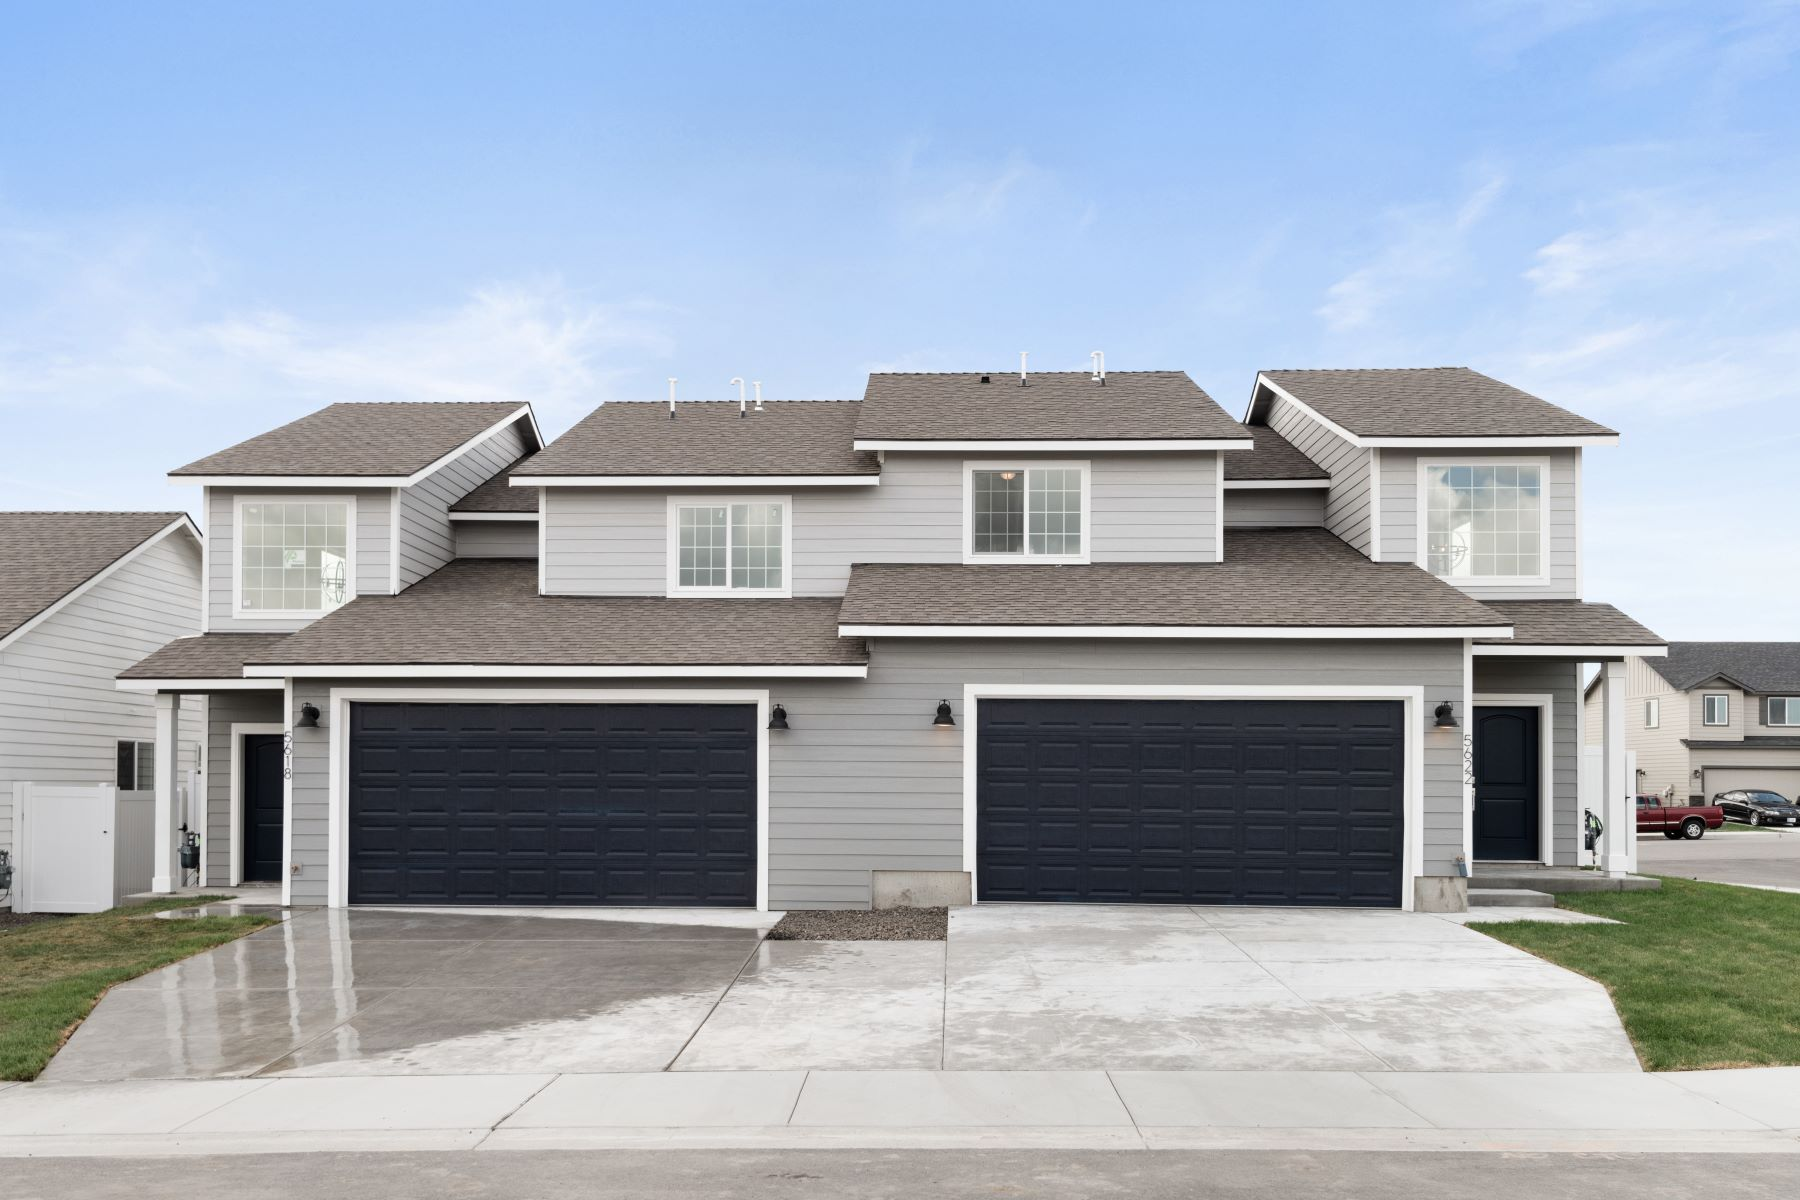 townhouses 용 매매 에 Gorgeous and with a VIEW 5324 Remington Drive Pasco, 워싱톤 99301 미국